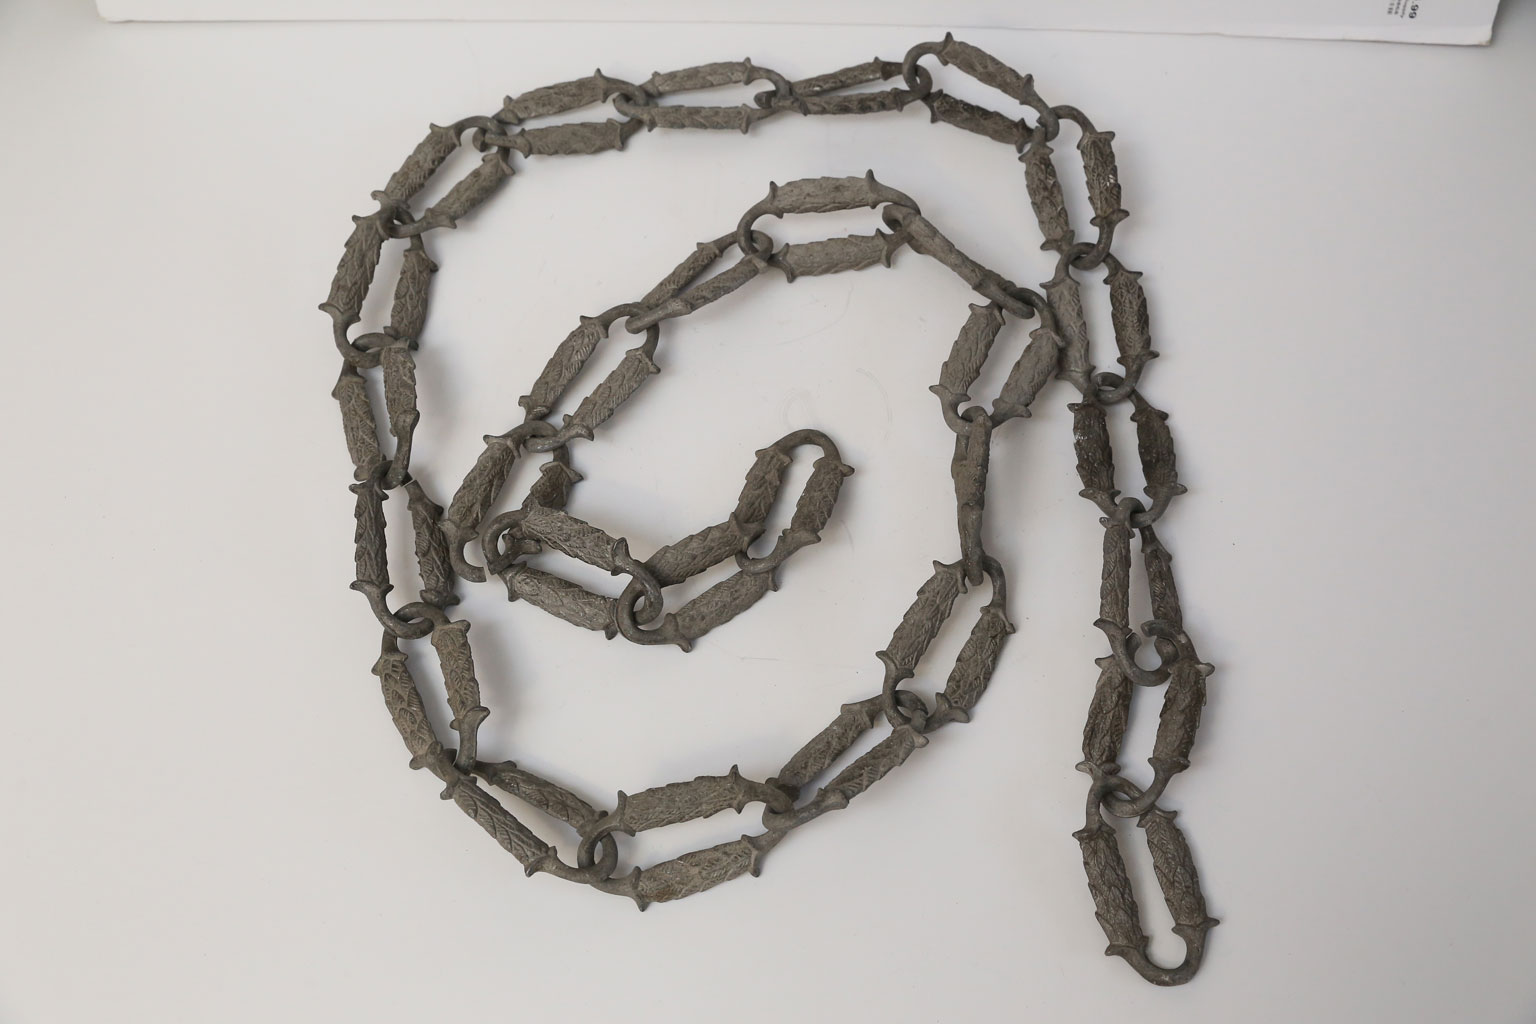 Rare 1920s Aluminum Decorative Chain